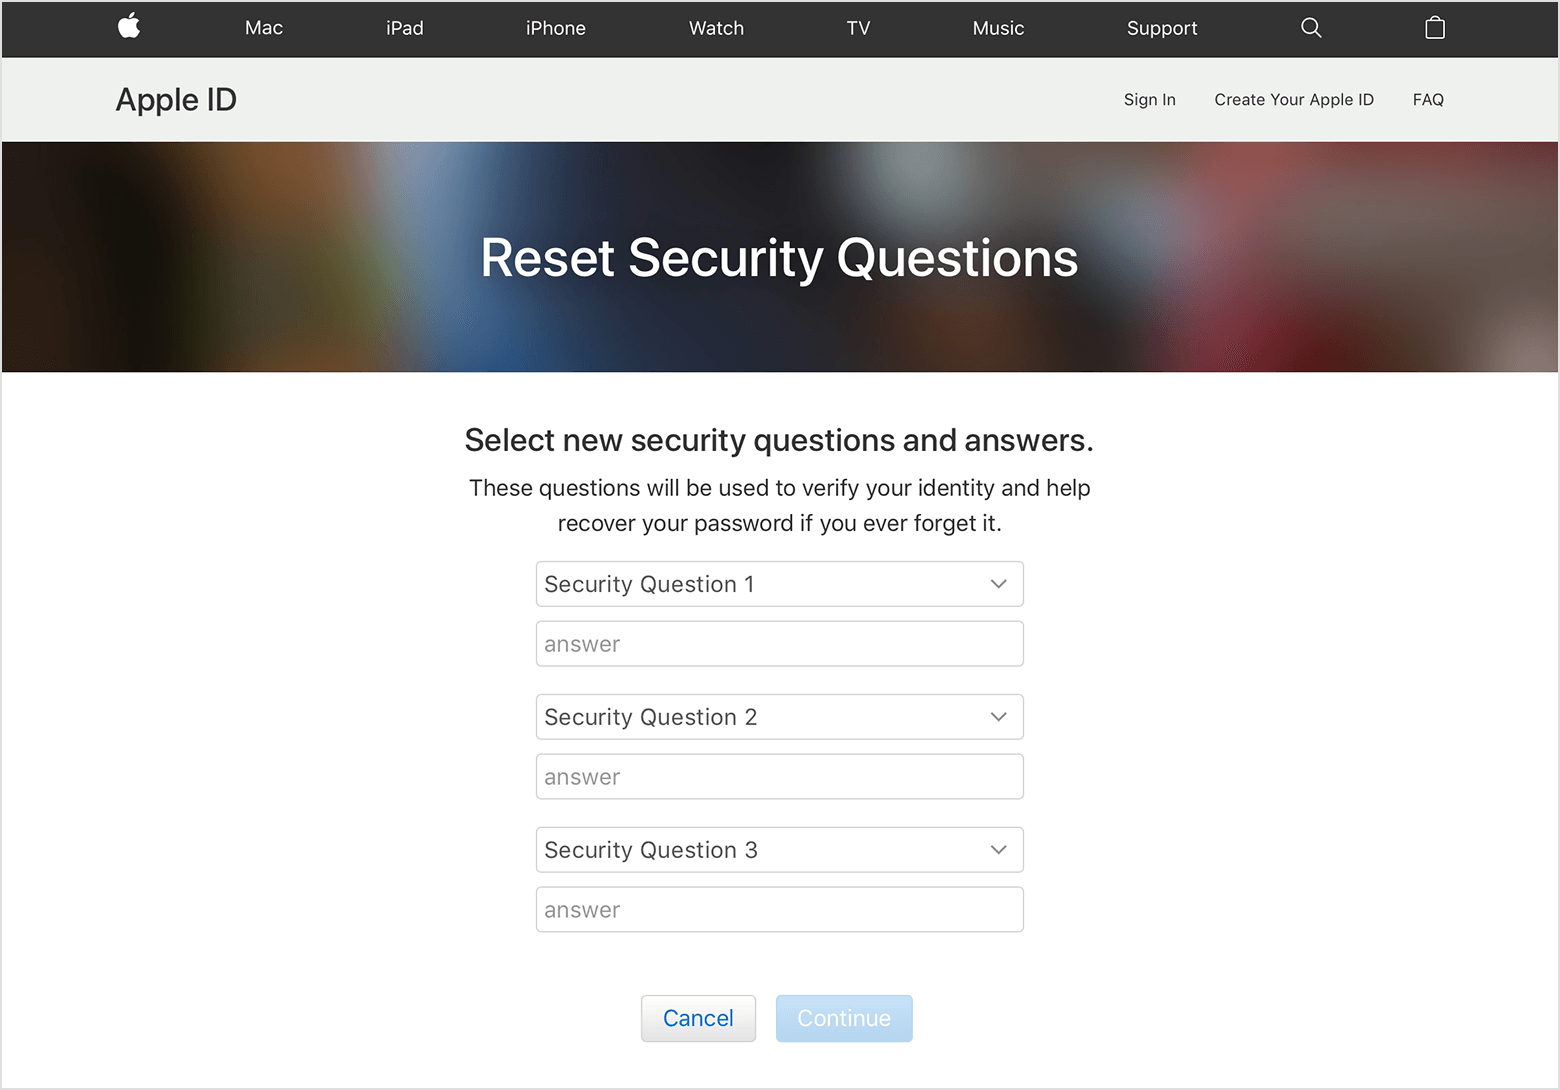 Tap on Update to save the changes. Apple cannot reset security questions